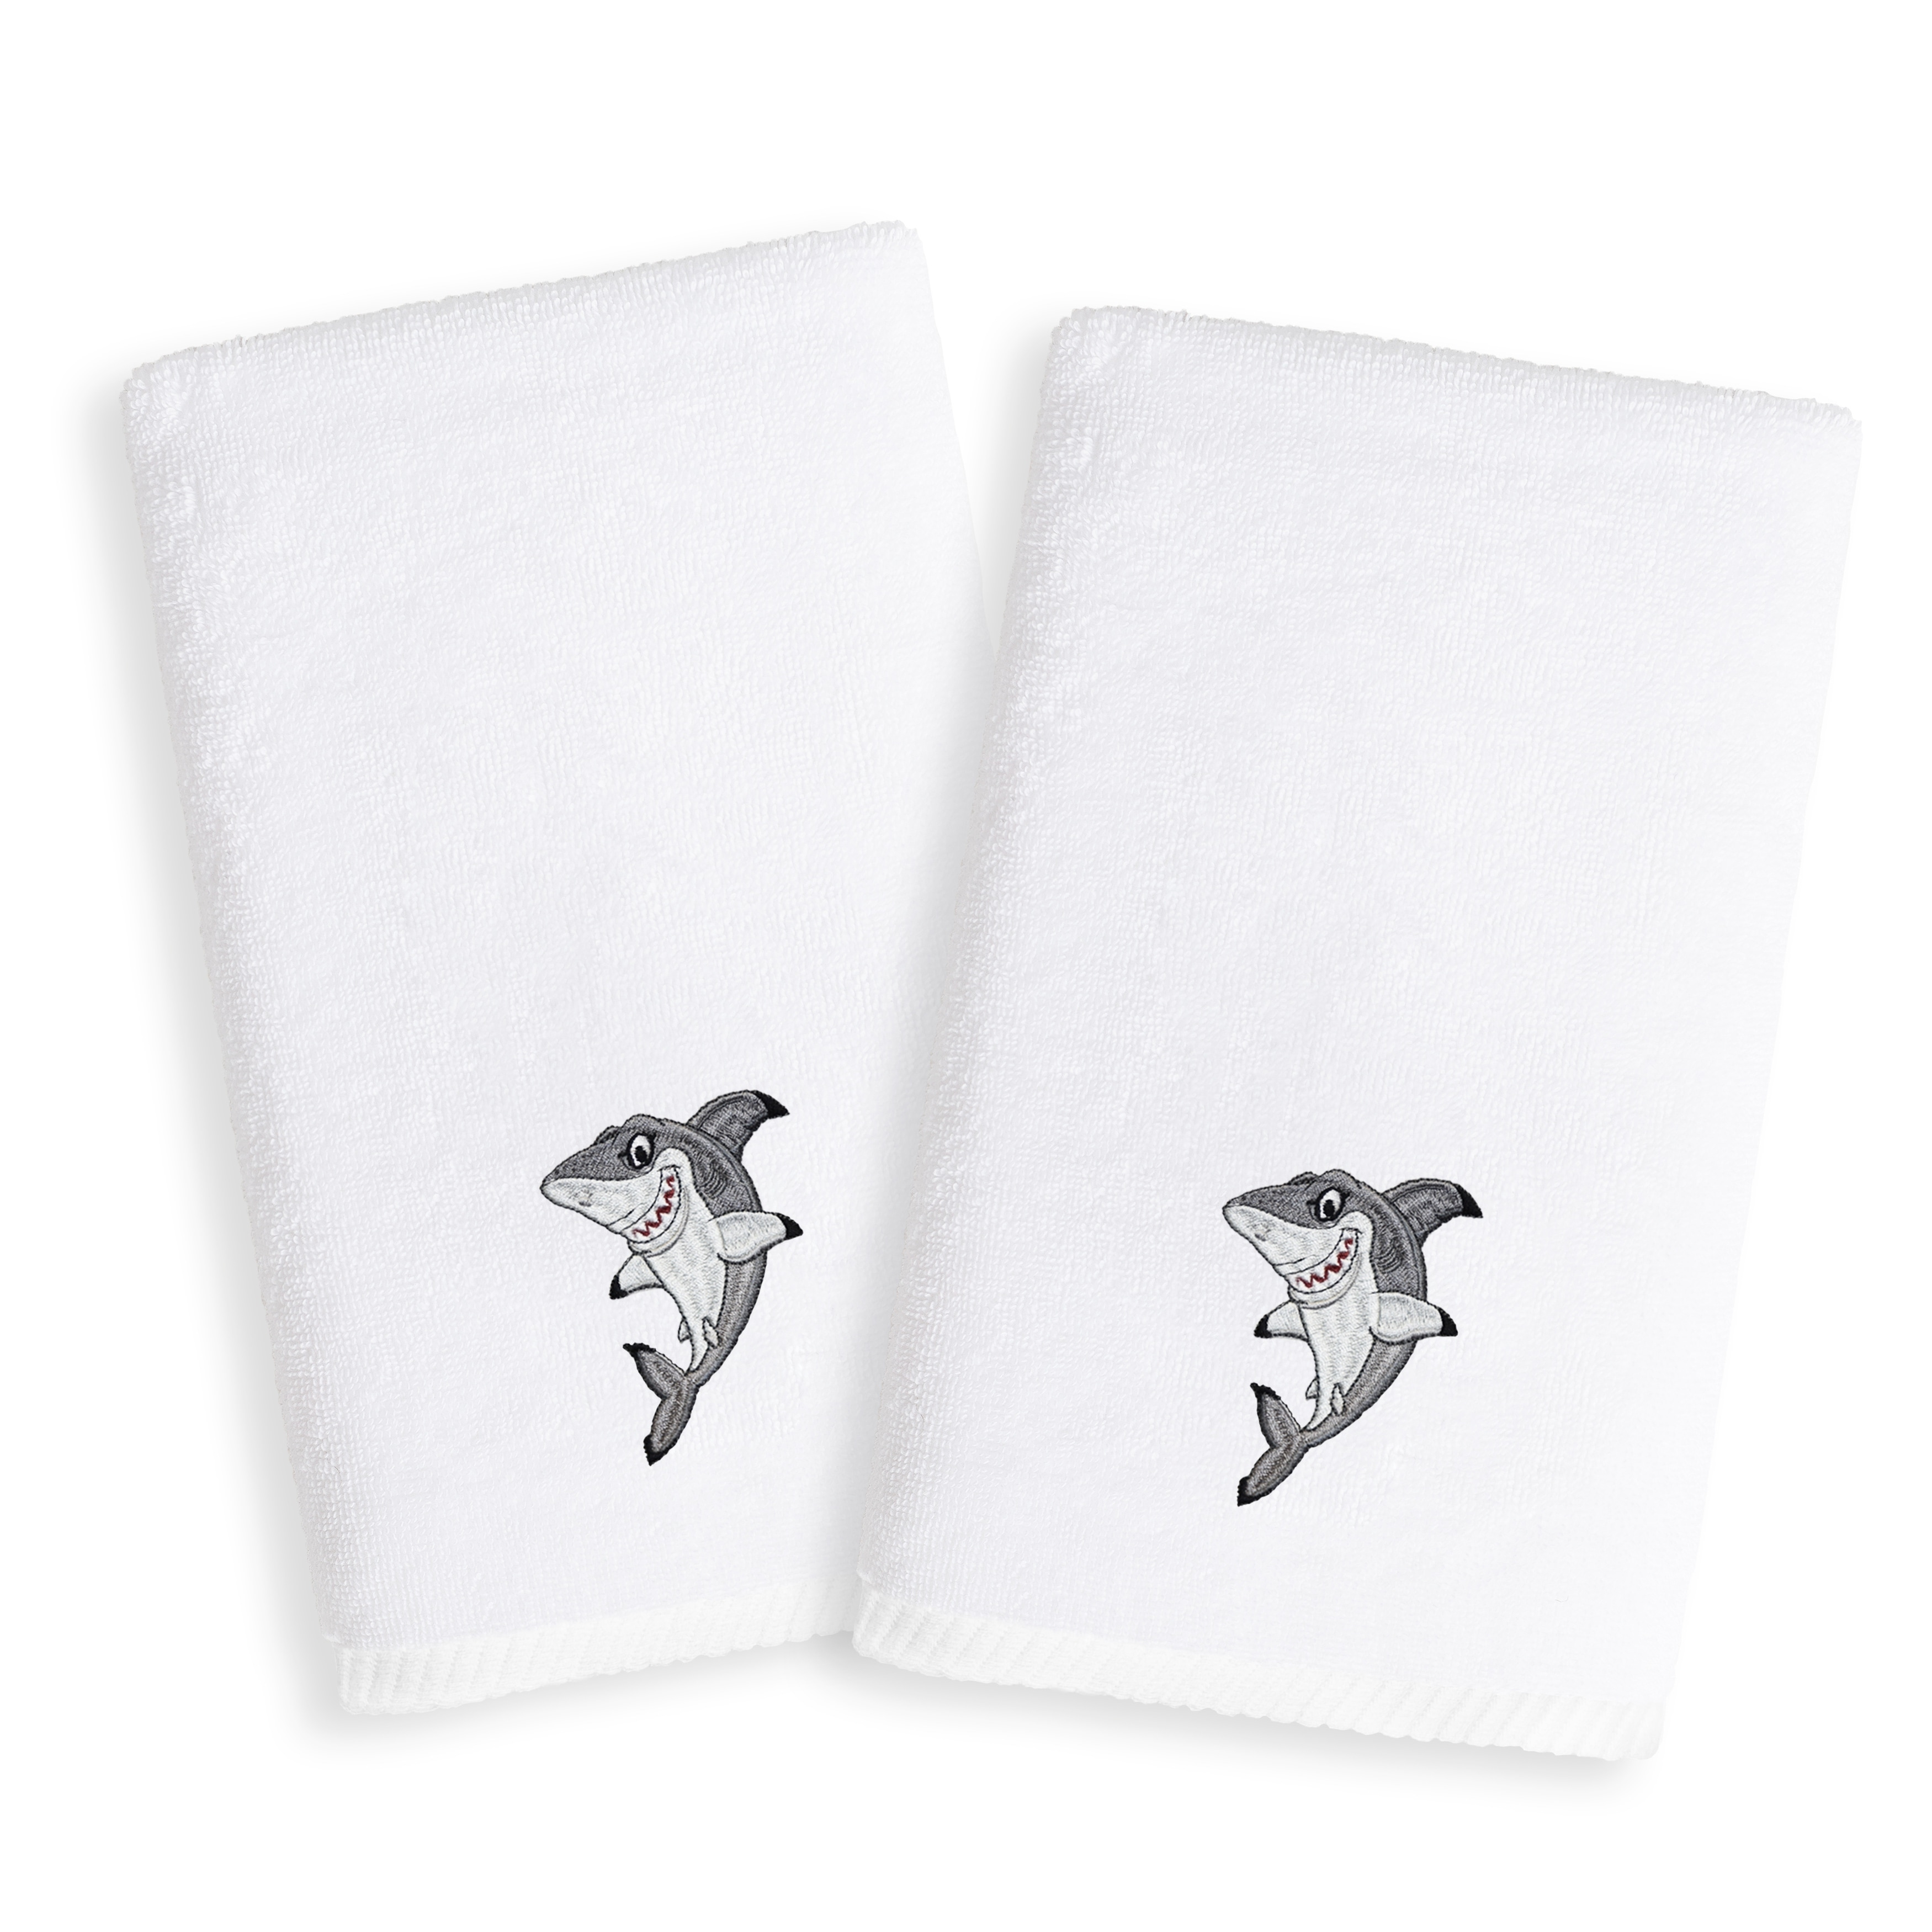 Embroidered Terry Cloth Hand Towels: Sweet Kids Shark Embroidered White Turkish Cotton Hand